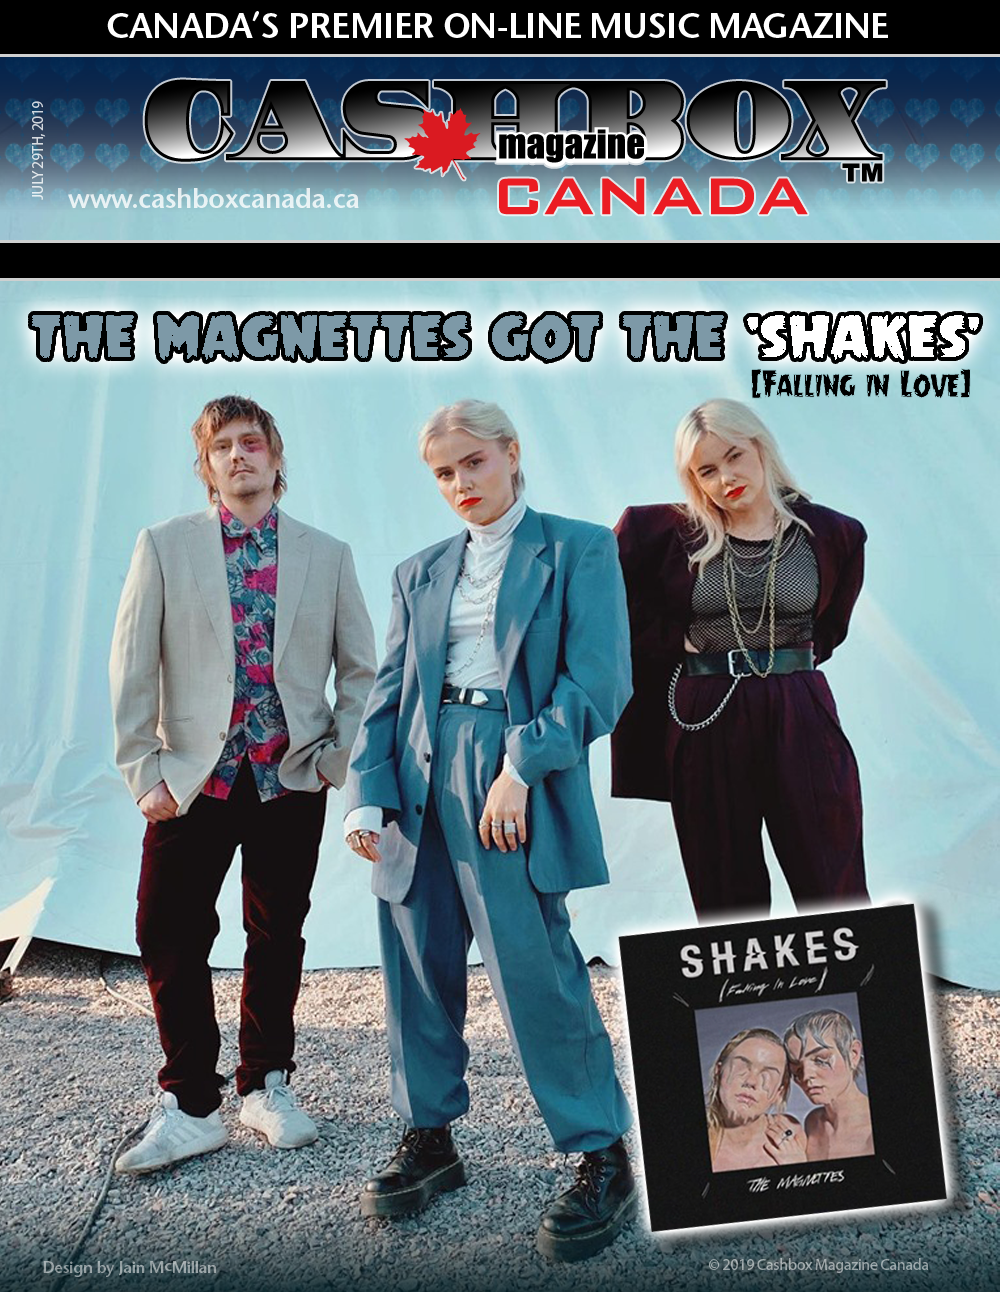 Swedish Group The Magnettes Got the 'Shakes' (Falling in Love)